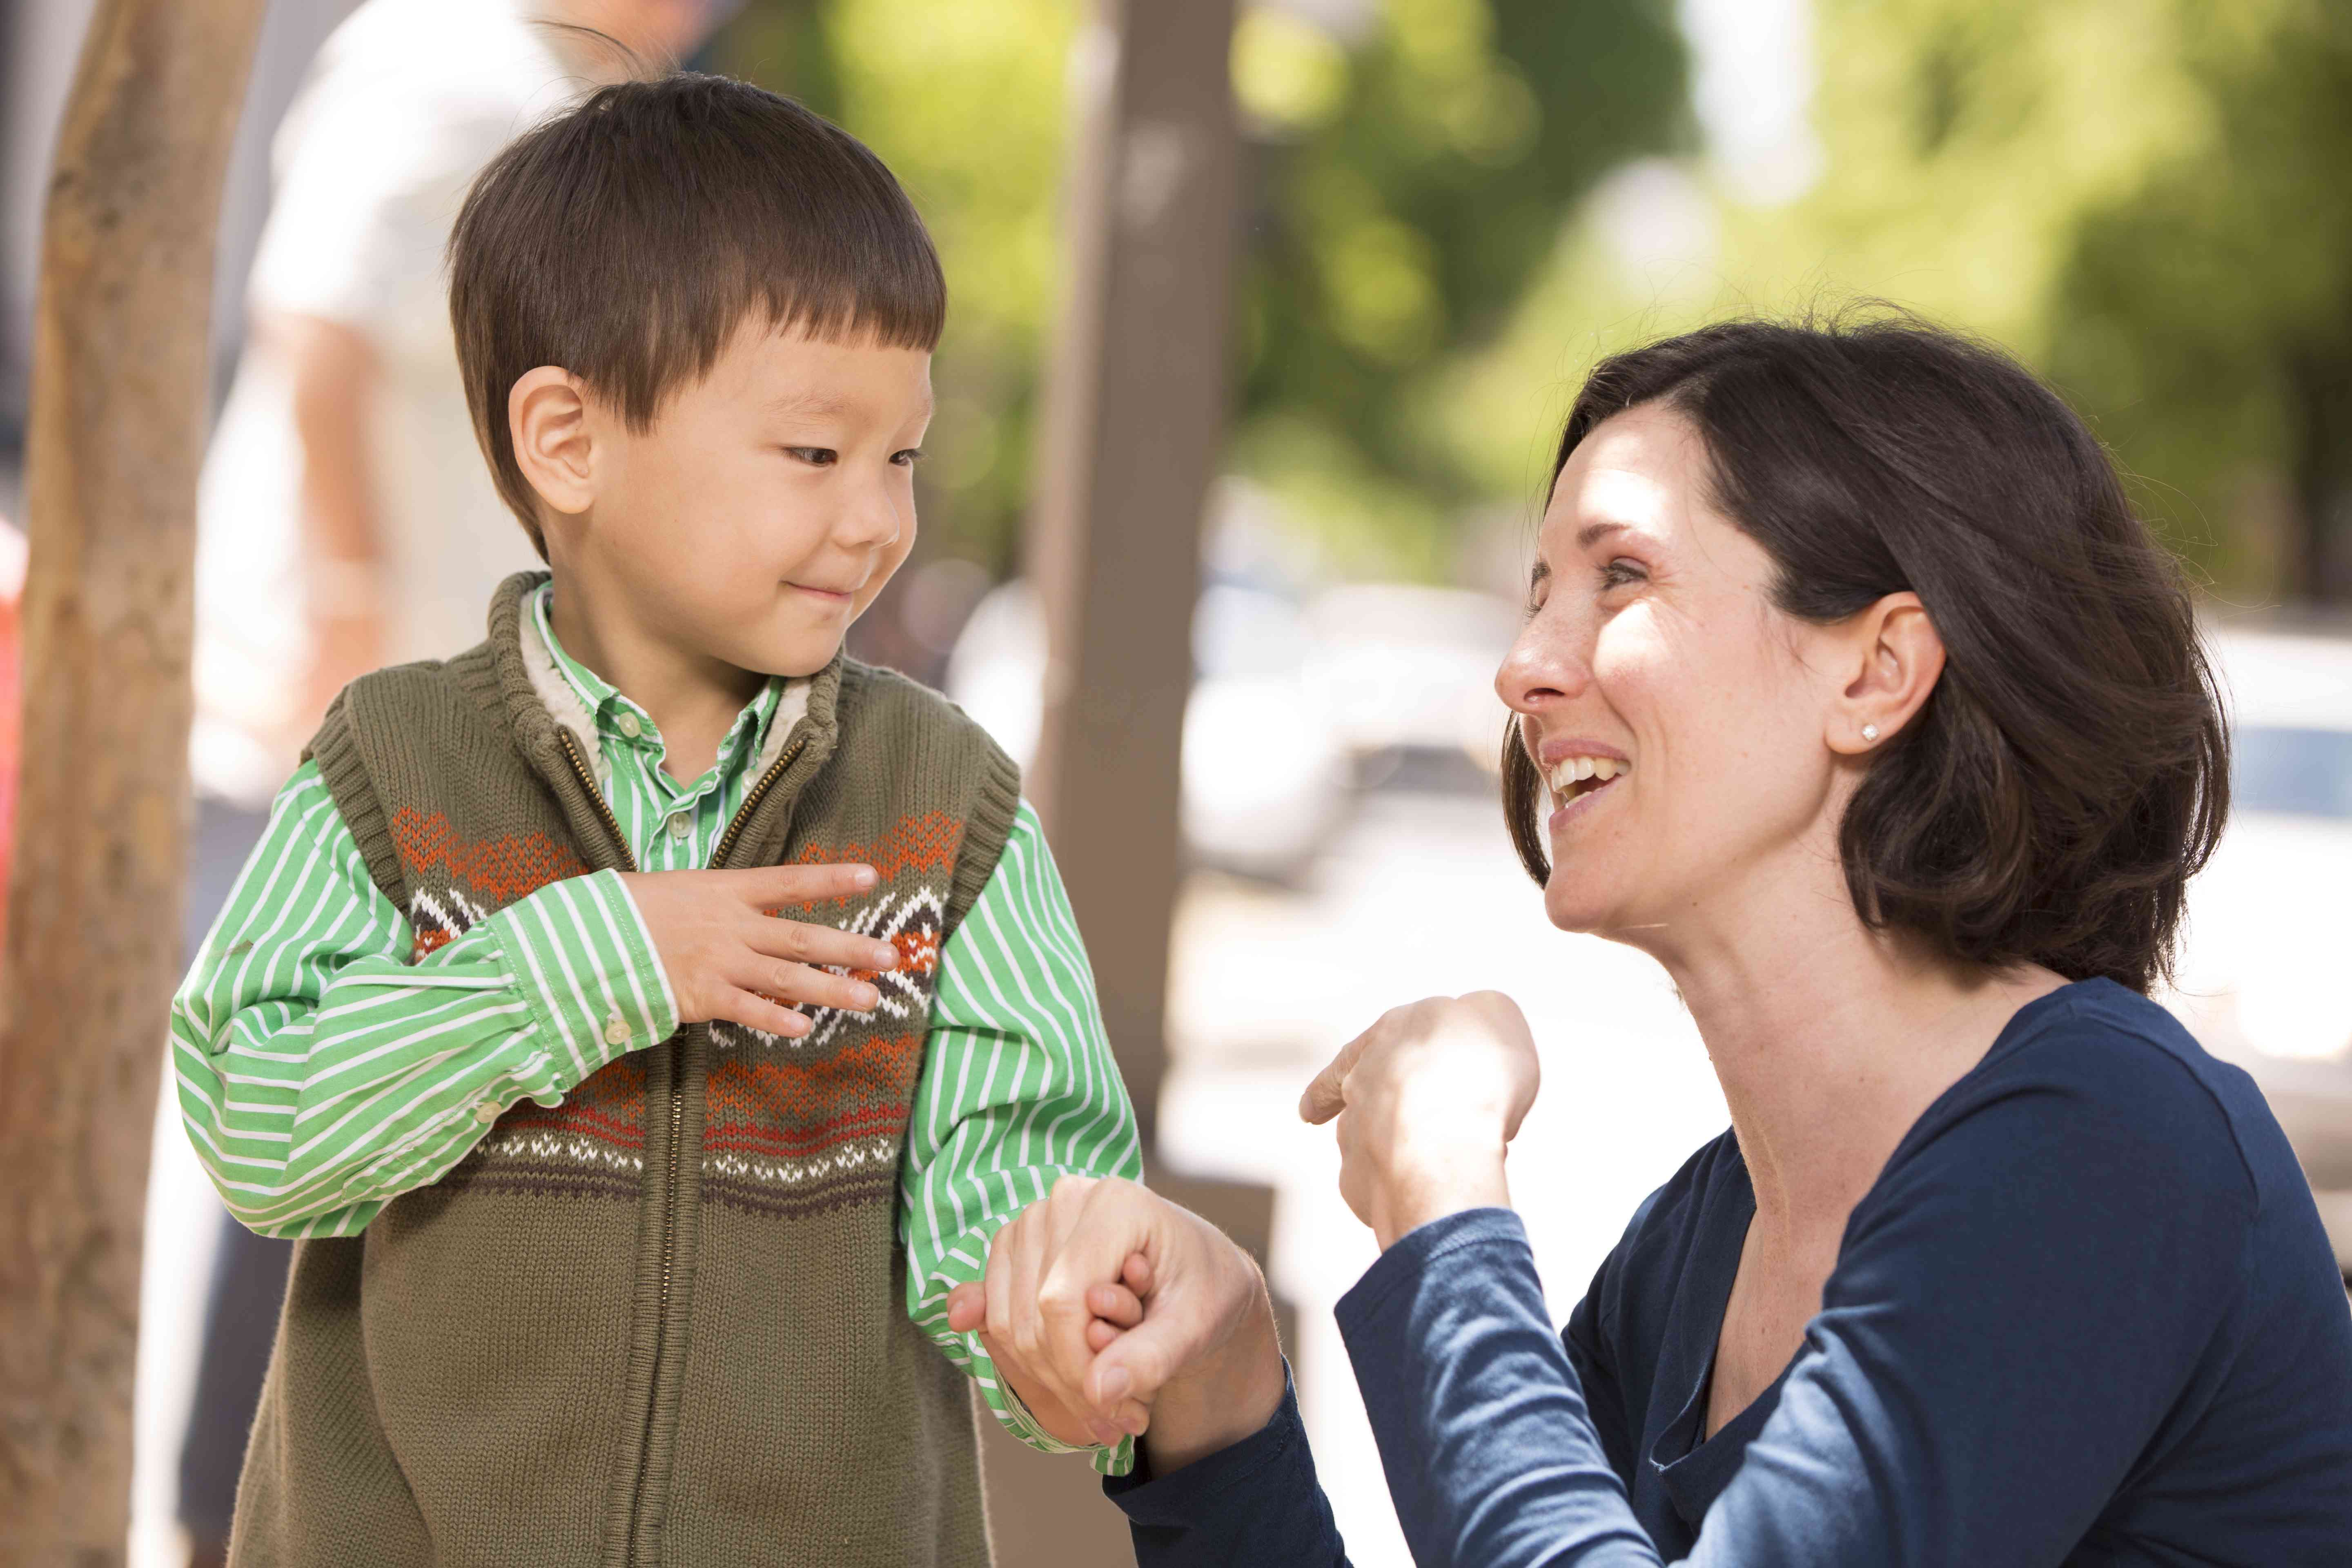 Parent communicating with child in sign language